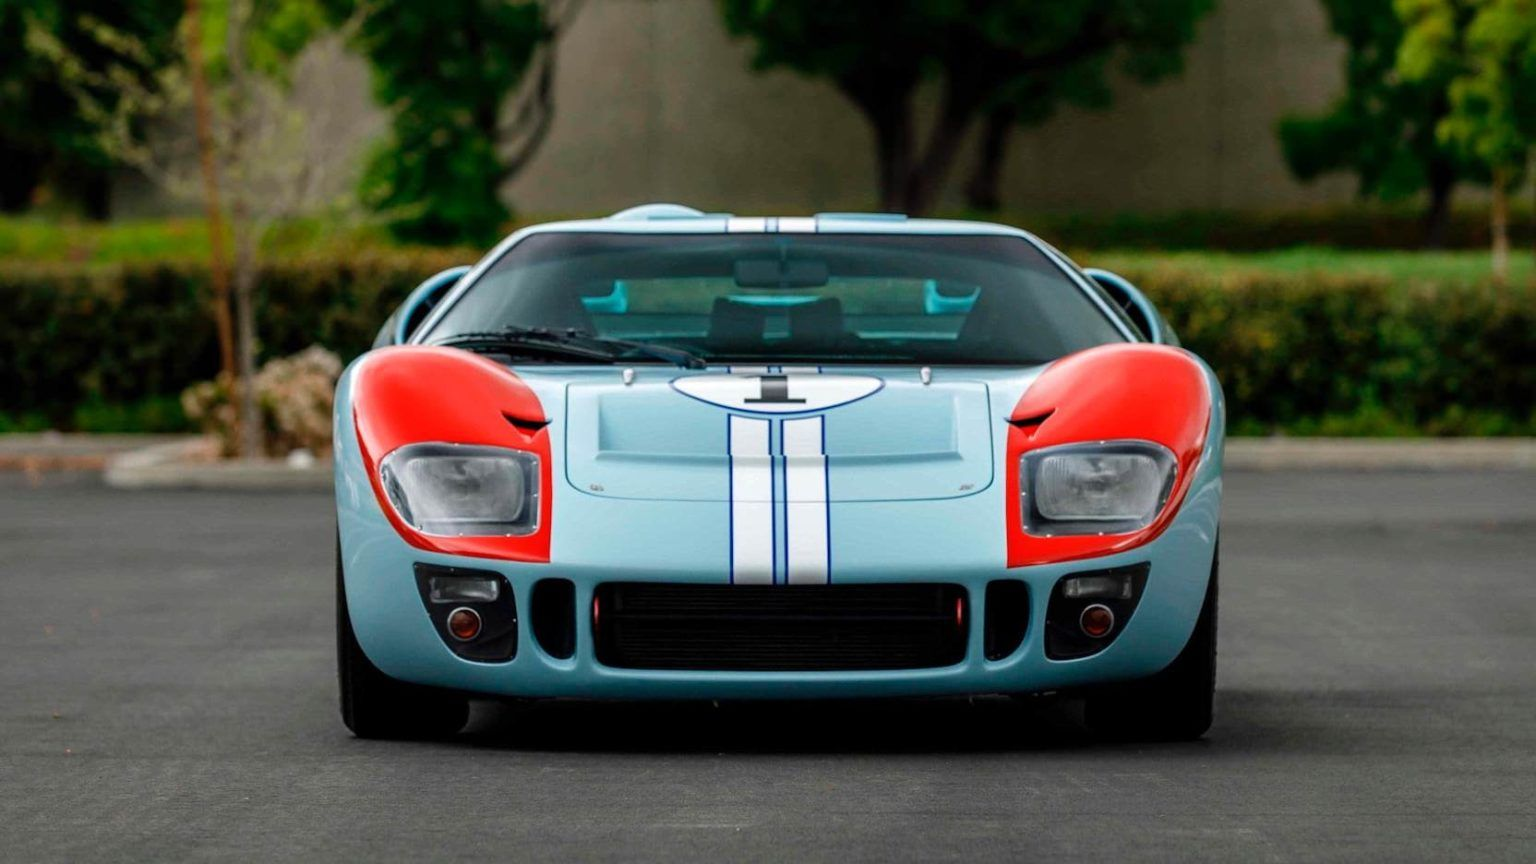 For Sale The Ken Miles Car From Ford V Ferrari A Superformance Ford Gt40 2020 フォードgt40 車